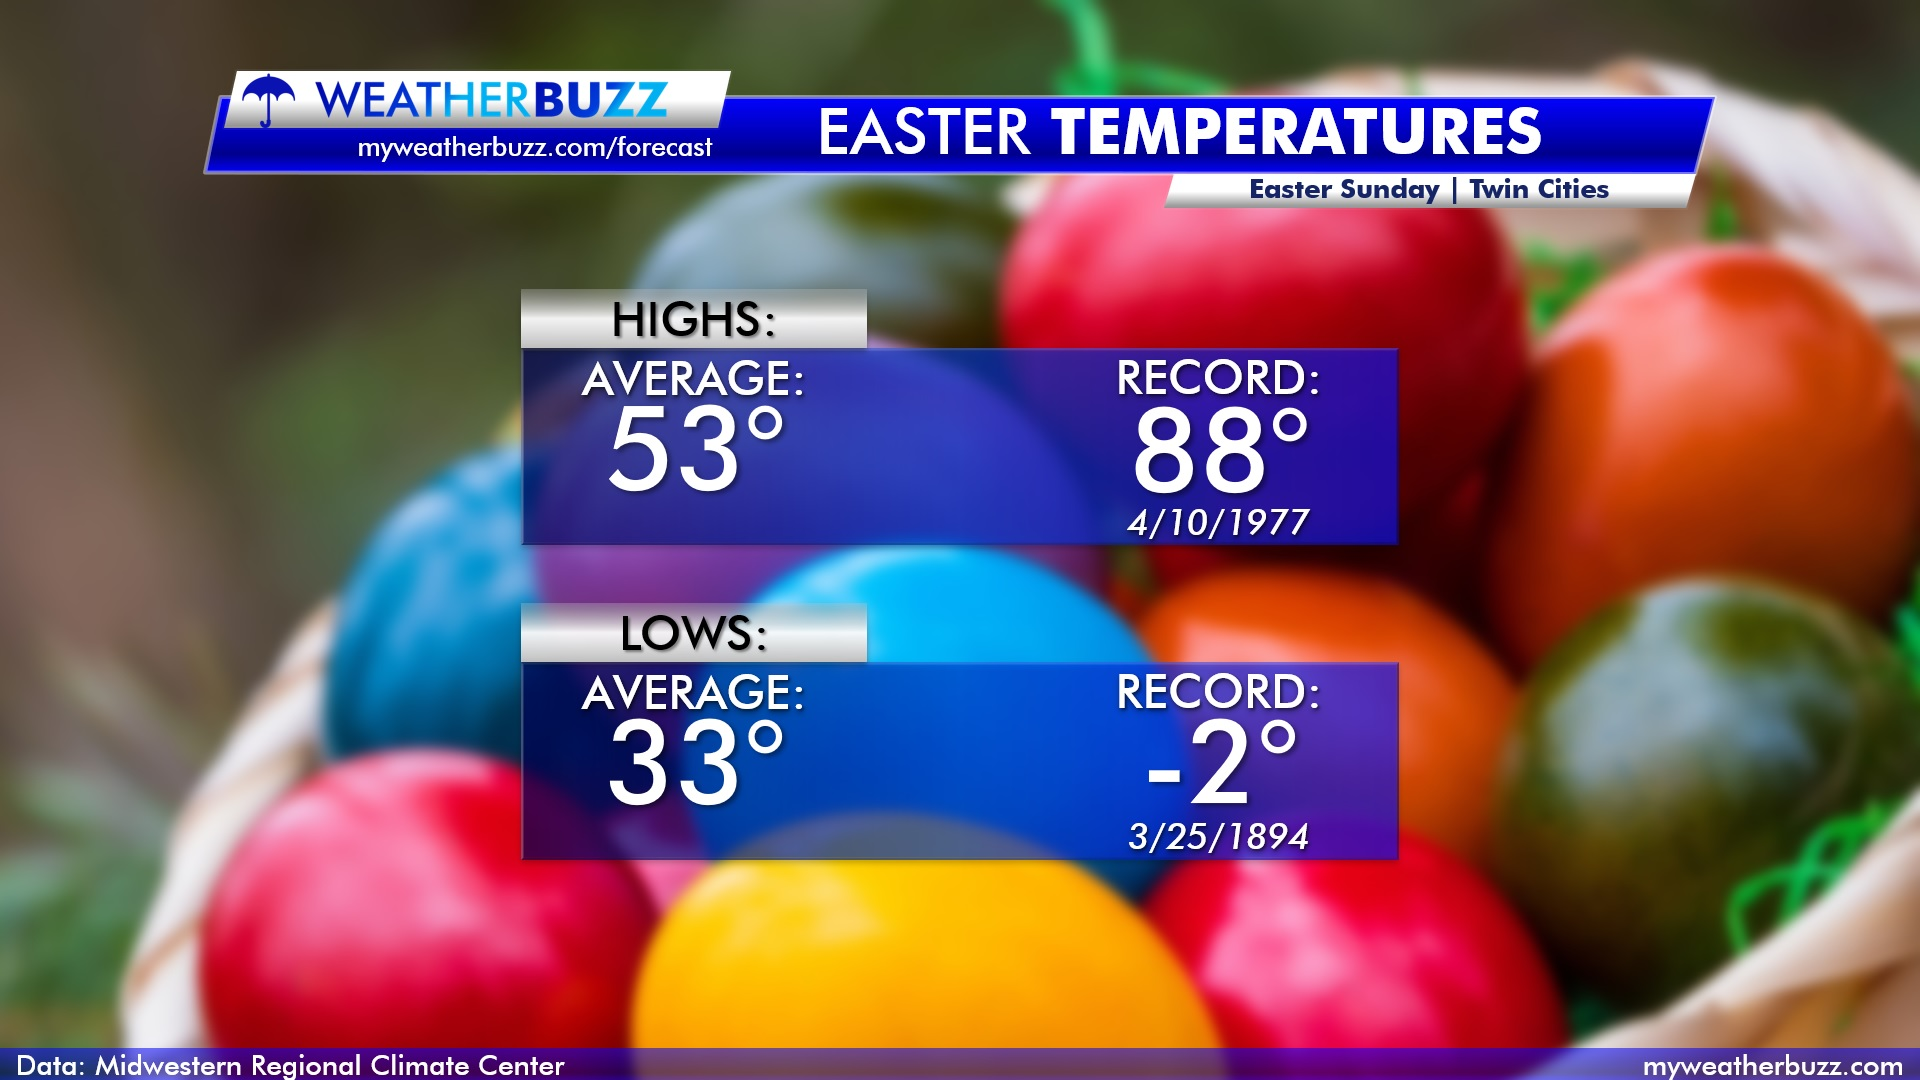 Easter Sunday Temperatures for the Twin Cities